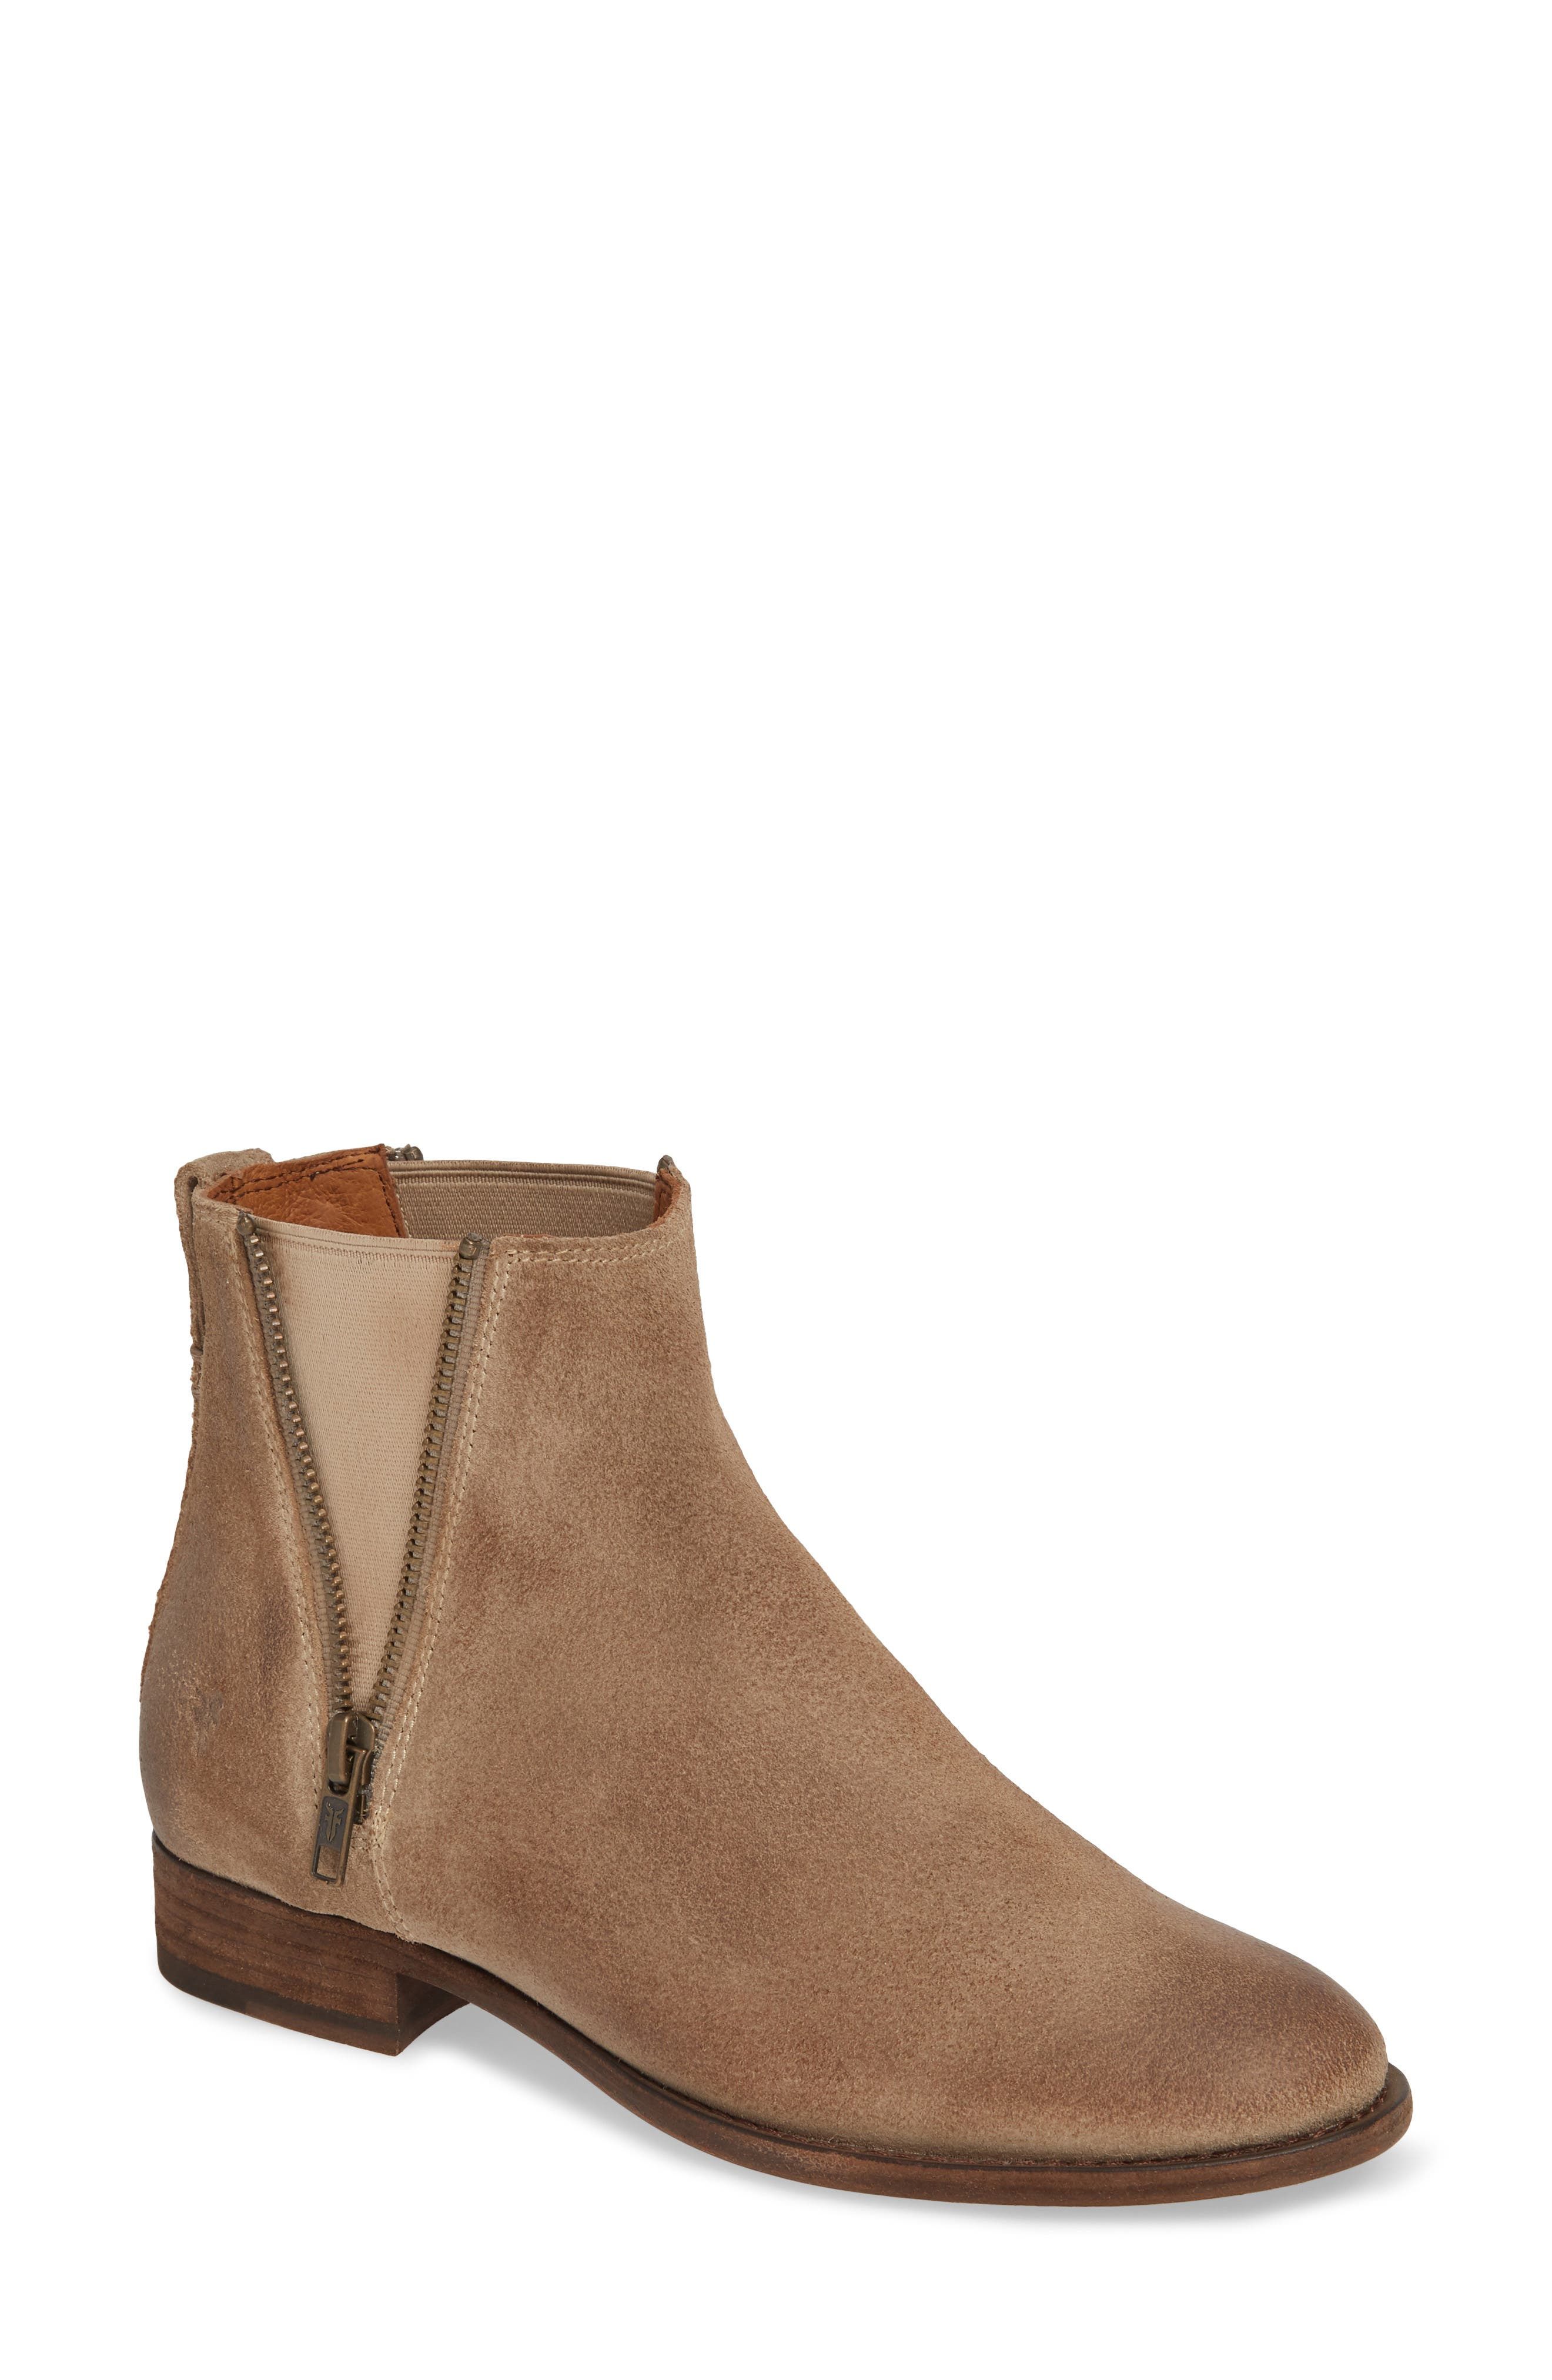 Frye Carly Chelsea Boot, Brown